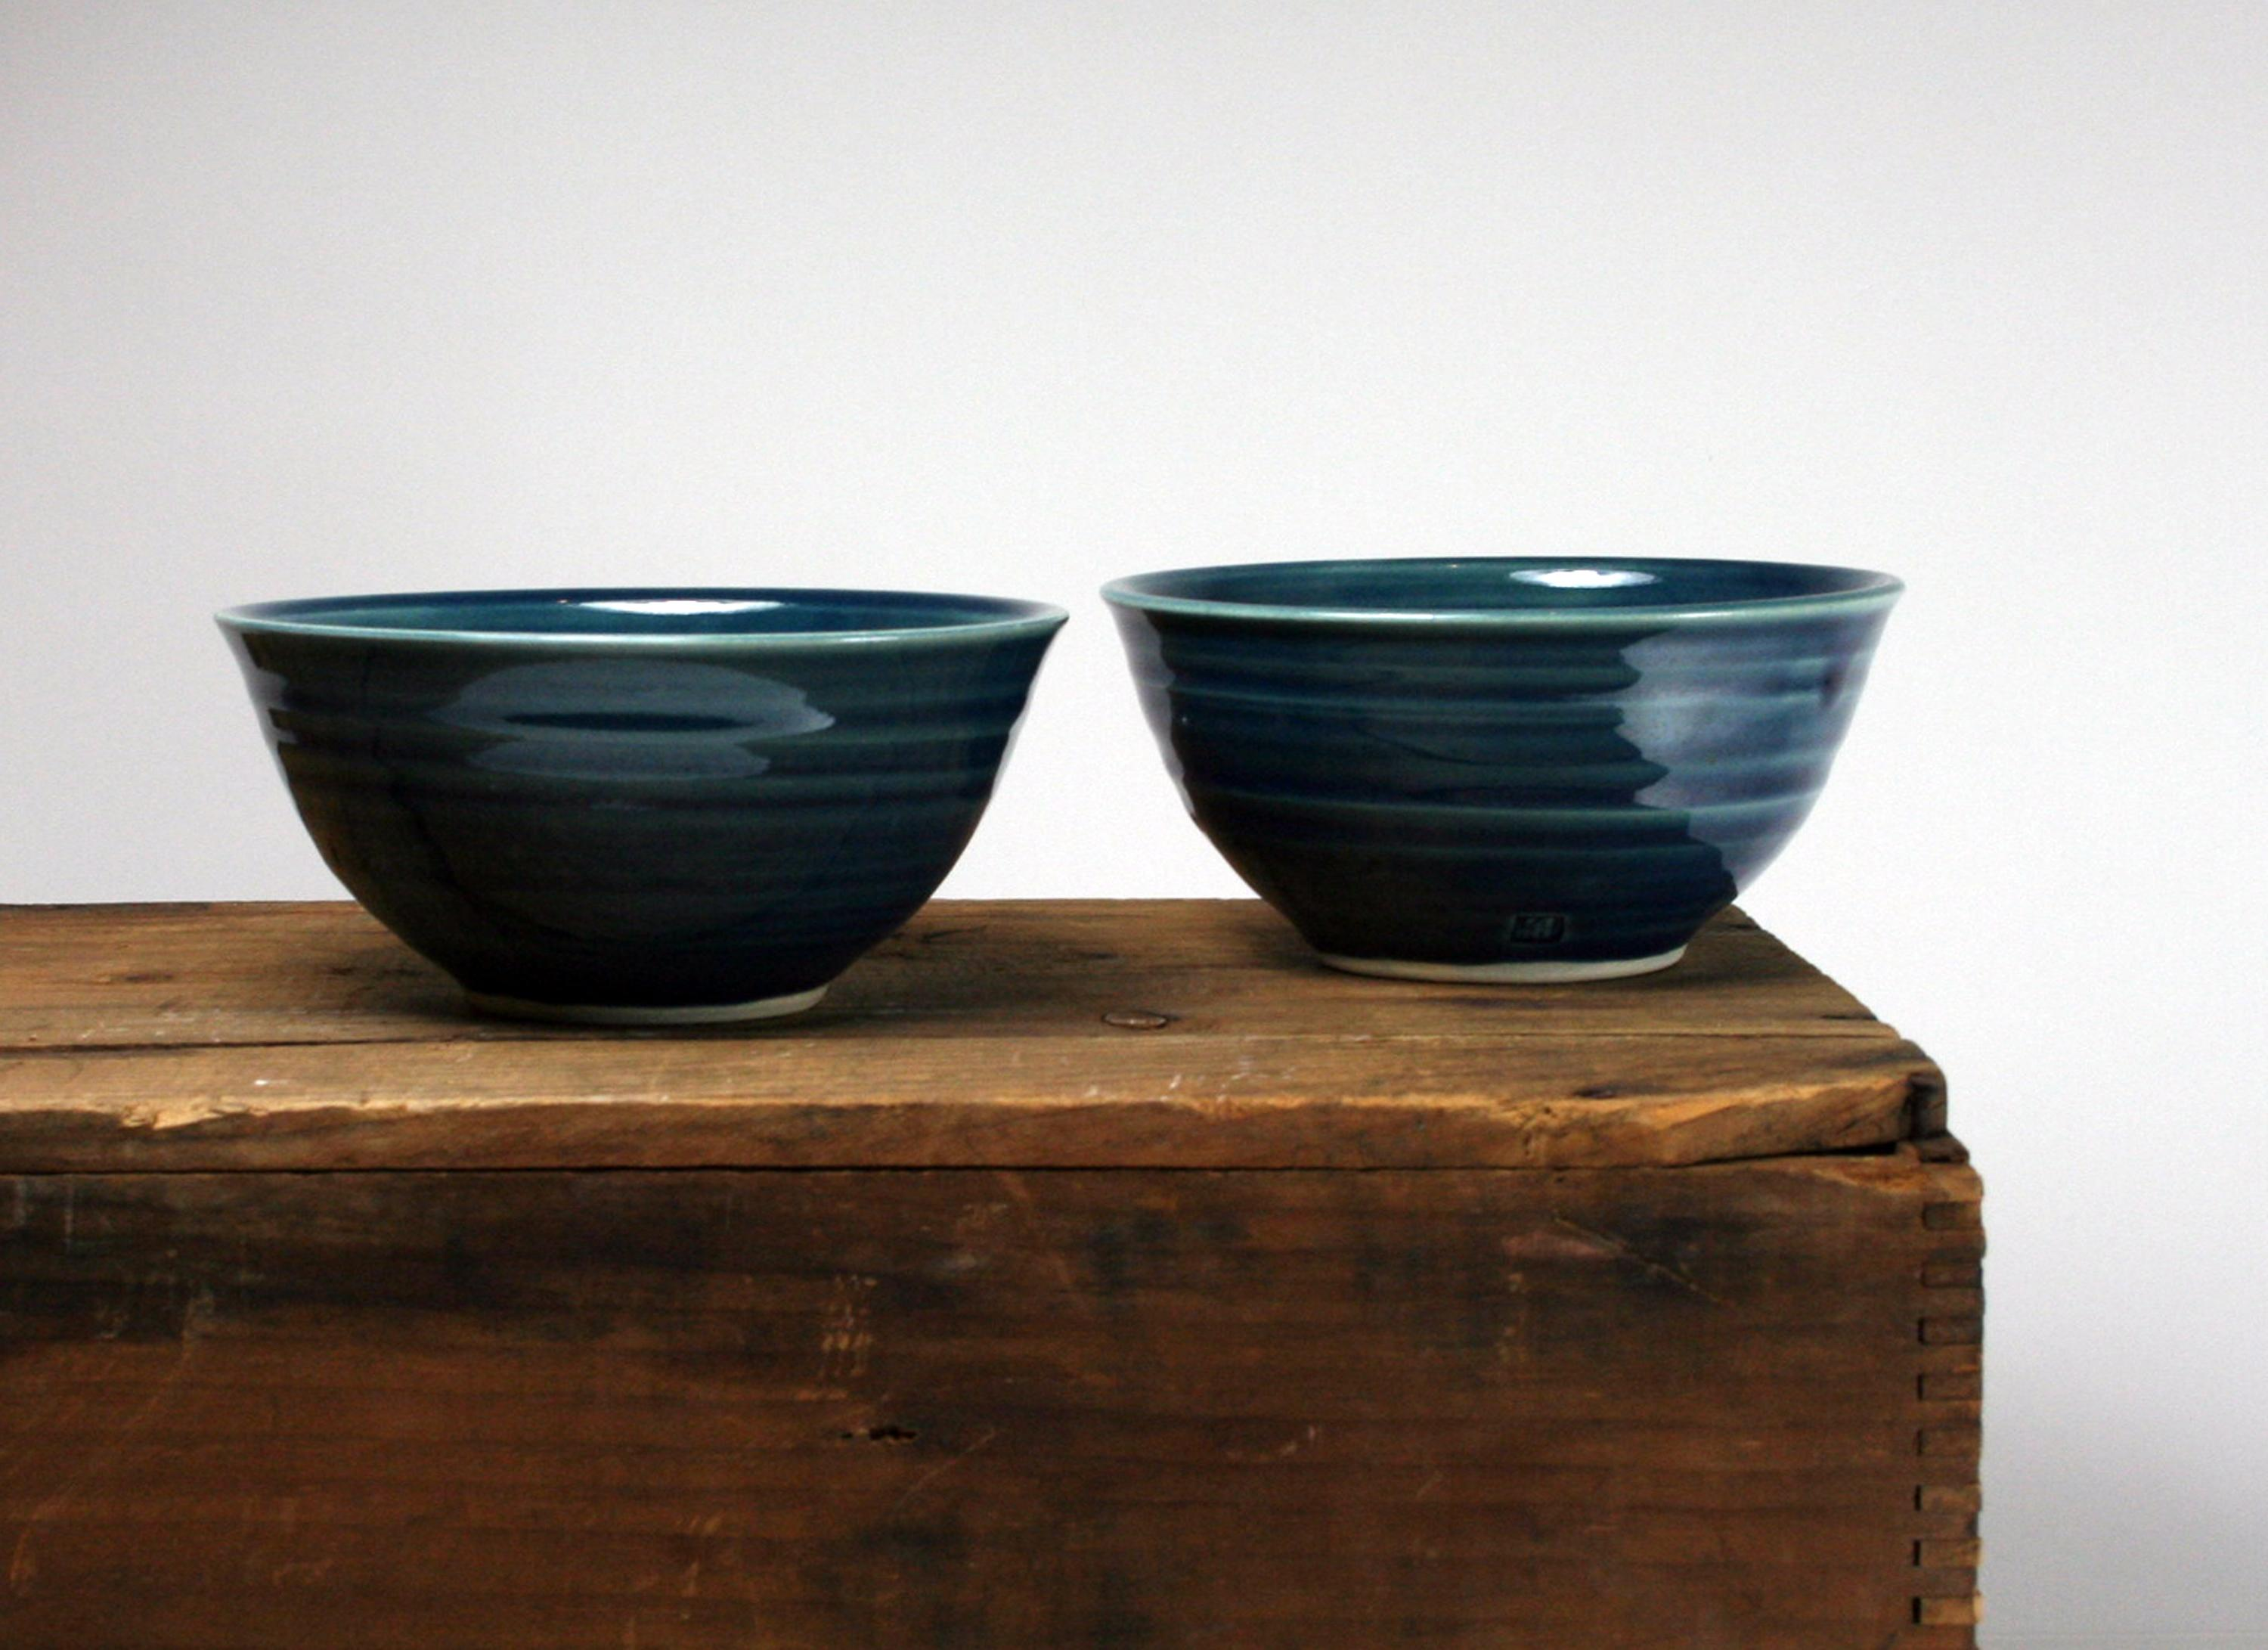 Blue Bowl by Hollow Work // Price: $32 each // Buy online // www.hollowwork.com // (Image: Hollow Work)<p></p>